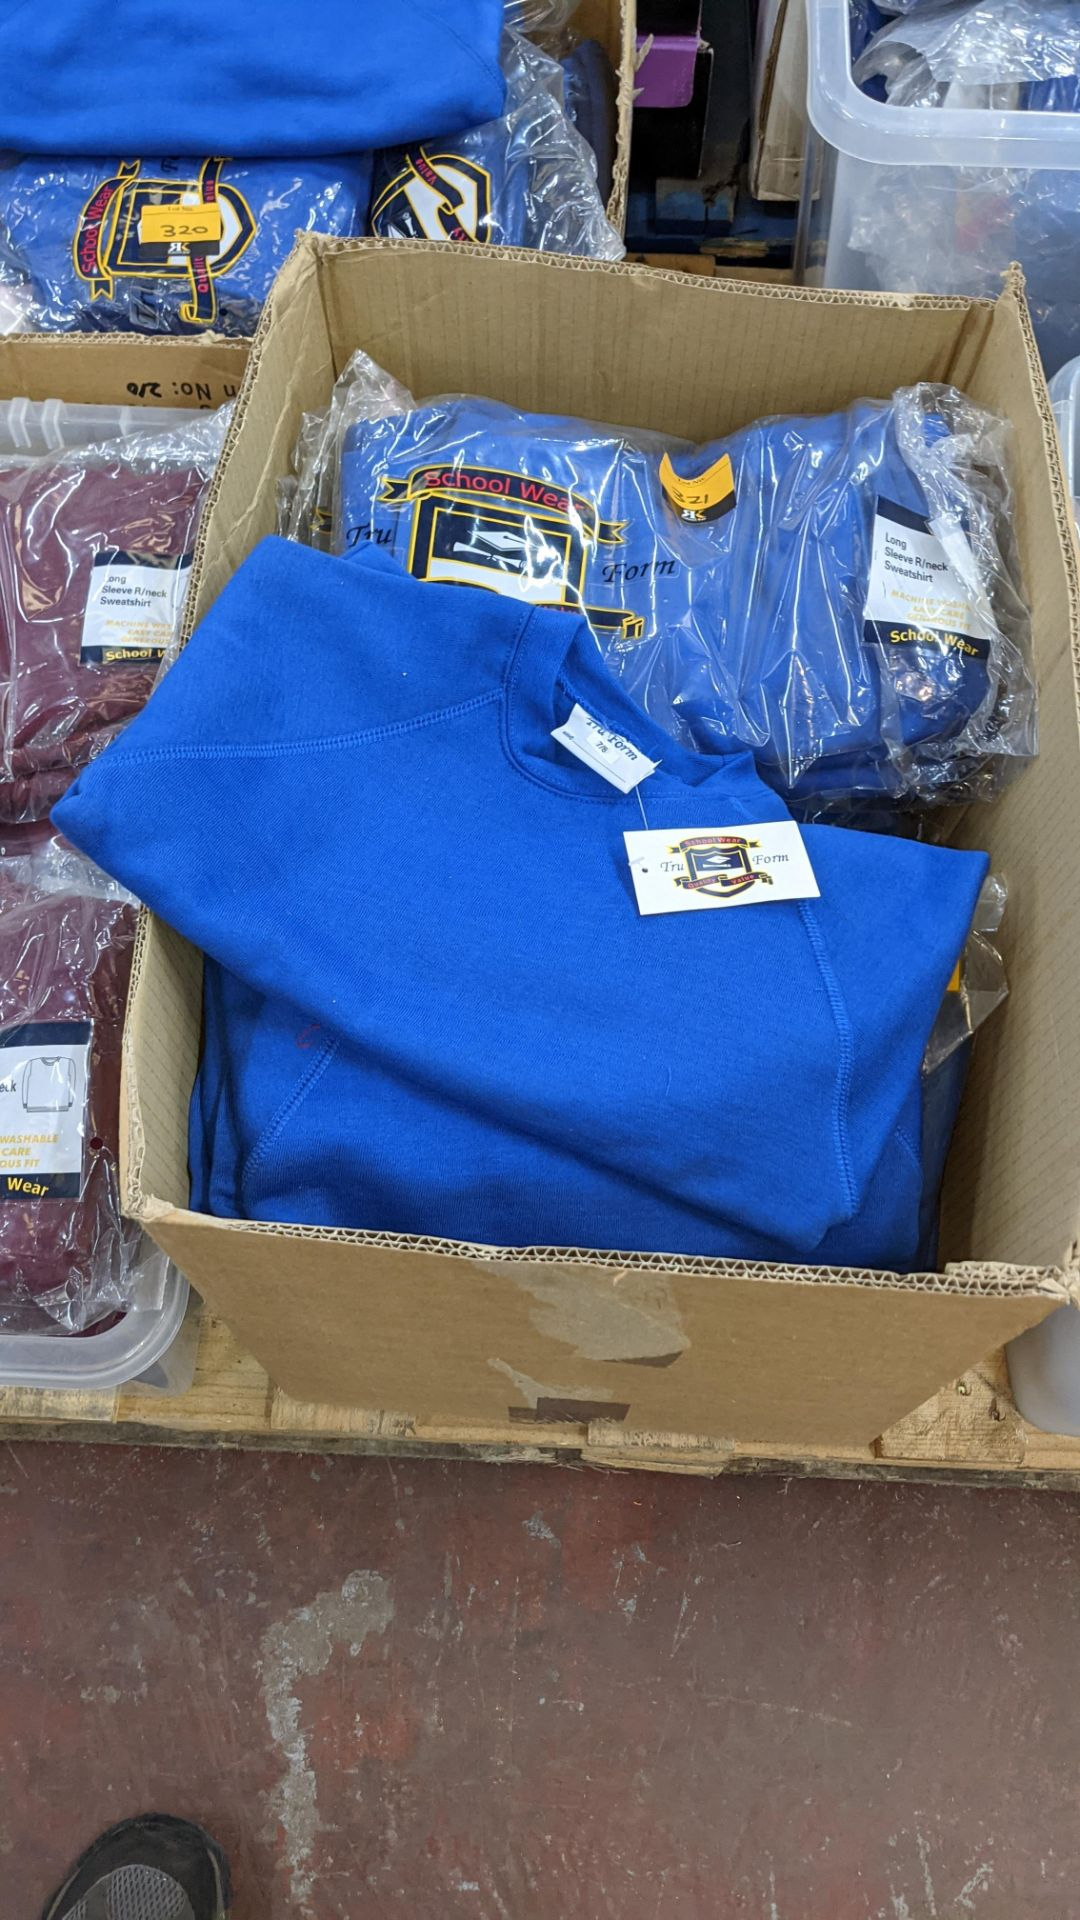 Approx 29 off blue children's sweatshirts & similar - the contents of 1 box - Image 2 of 4